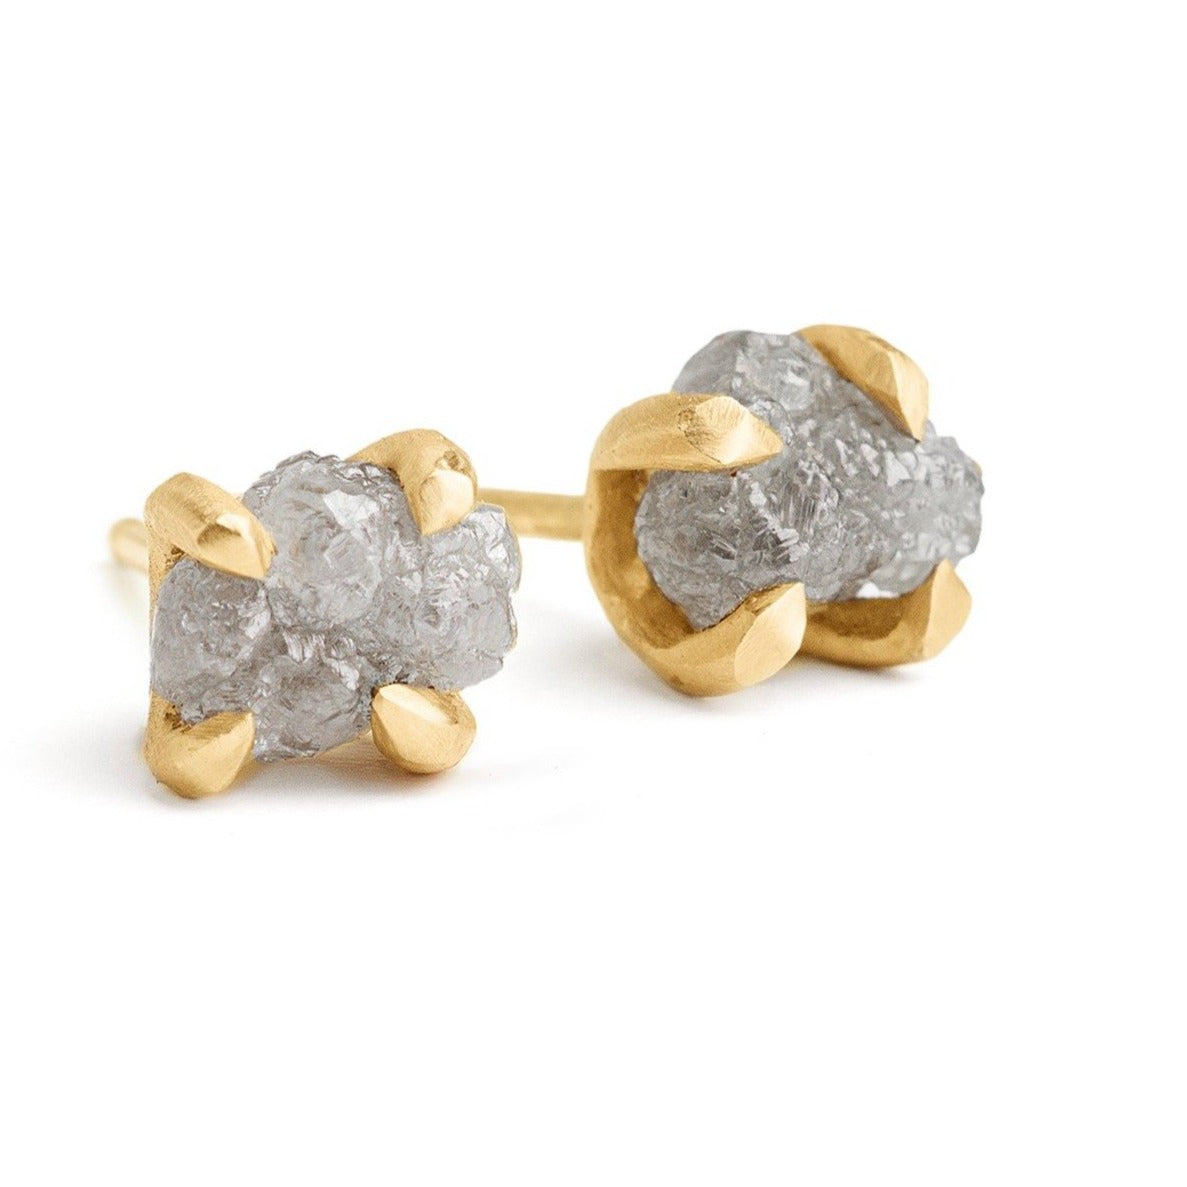 rough raw natural grey diamonds studs set in handmade 14kt gold setting